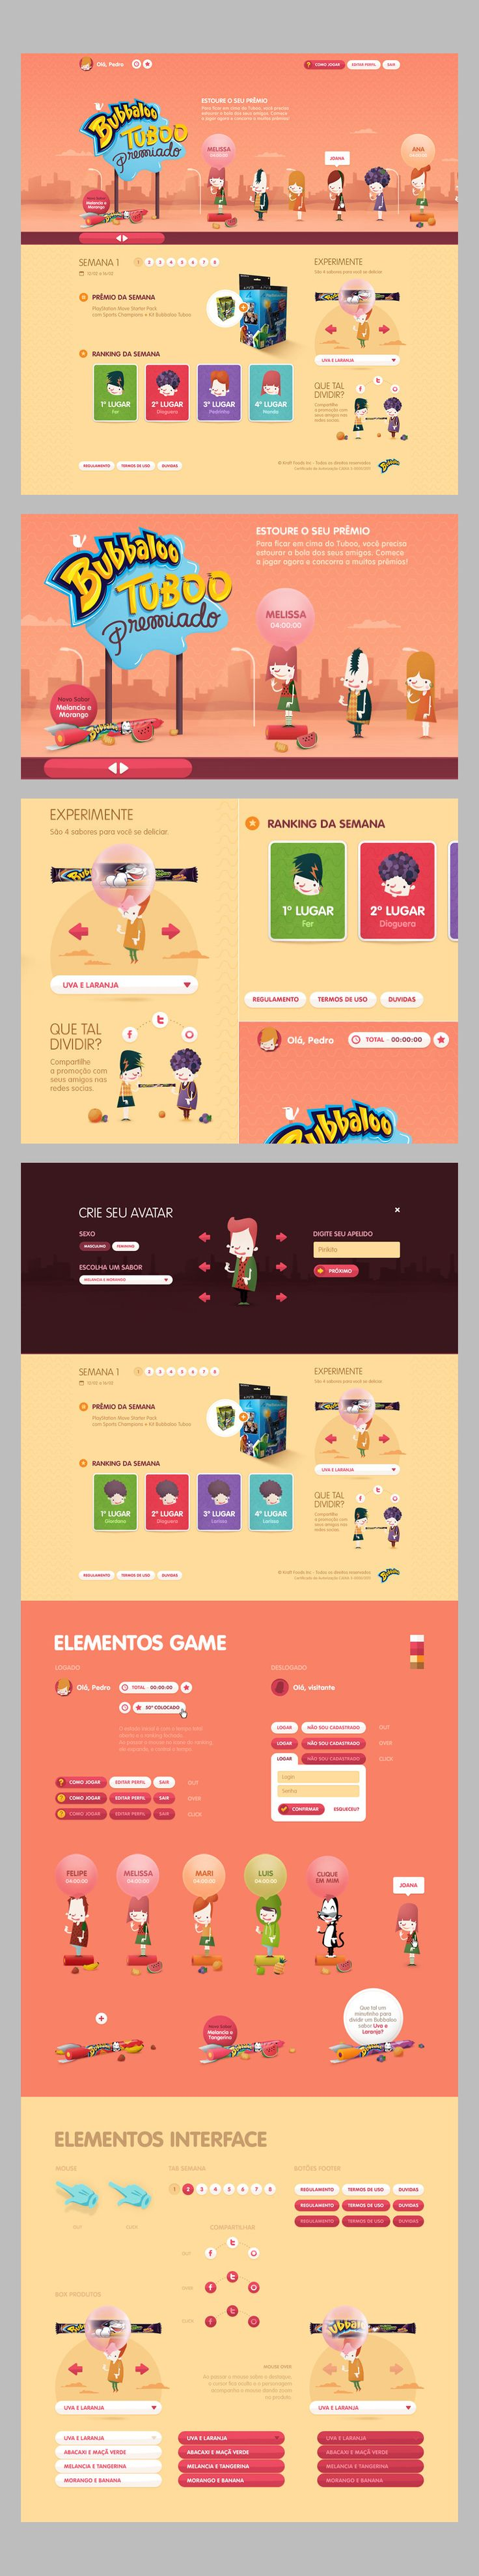 BUBBALOO web site - Agency: CUBOCC * My Role: Art Direction and Design * www.bubbaloo.com.br